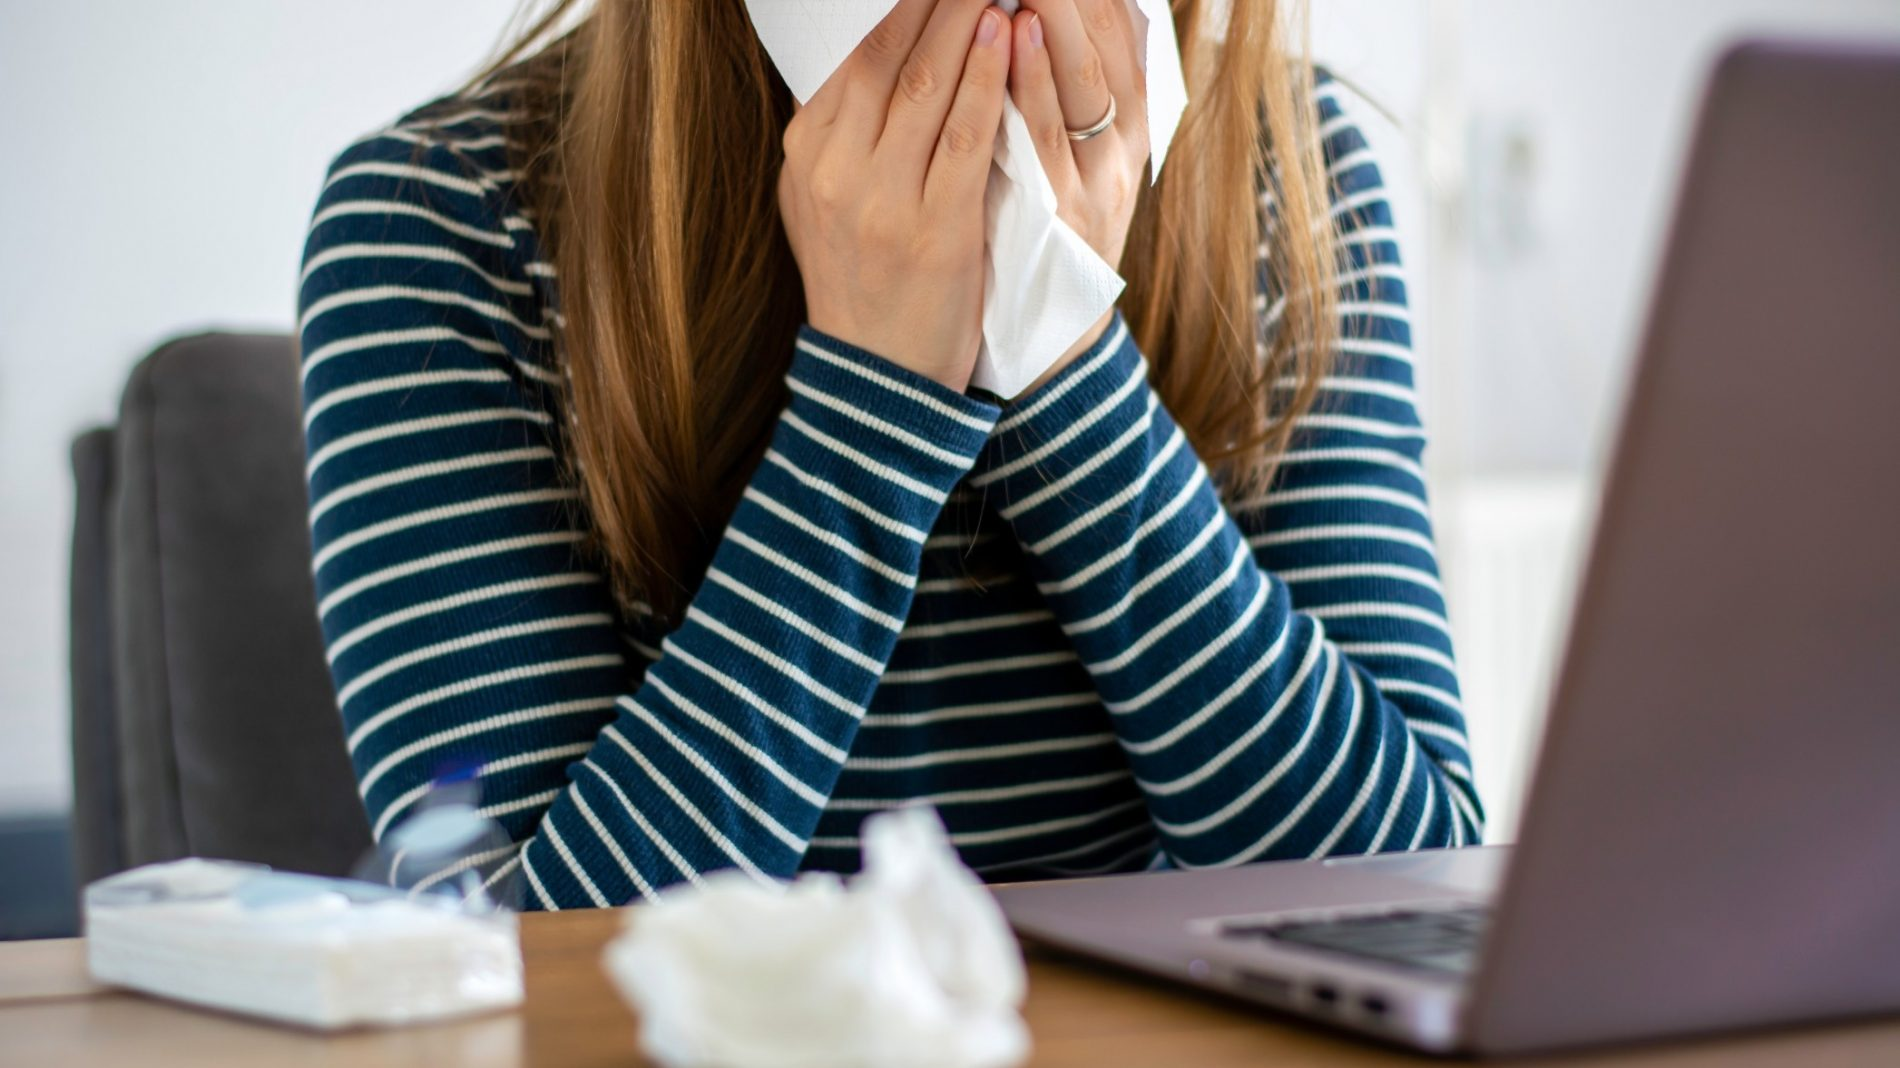 sick-woman-working-on-laptop-at-home-covering-nose-and-mouth-when-coughing-and-sneezing-in-tissue-ill_t20_WgkLQK